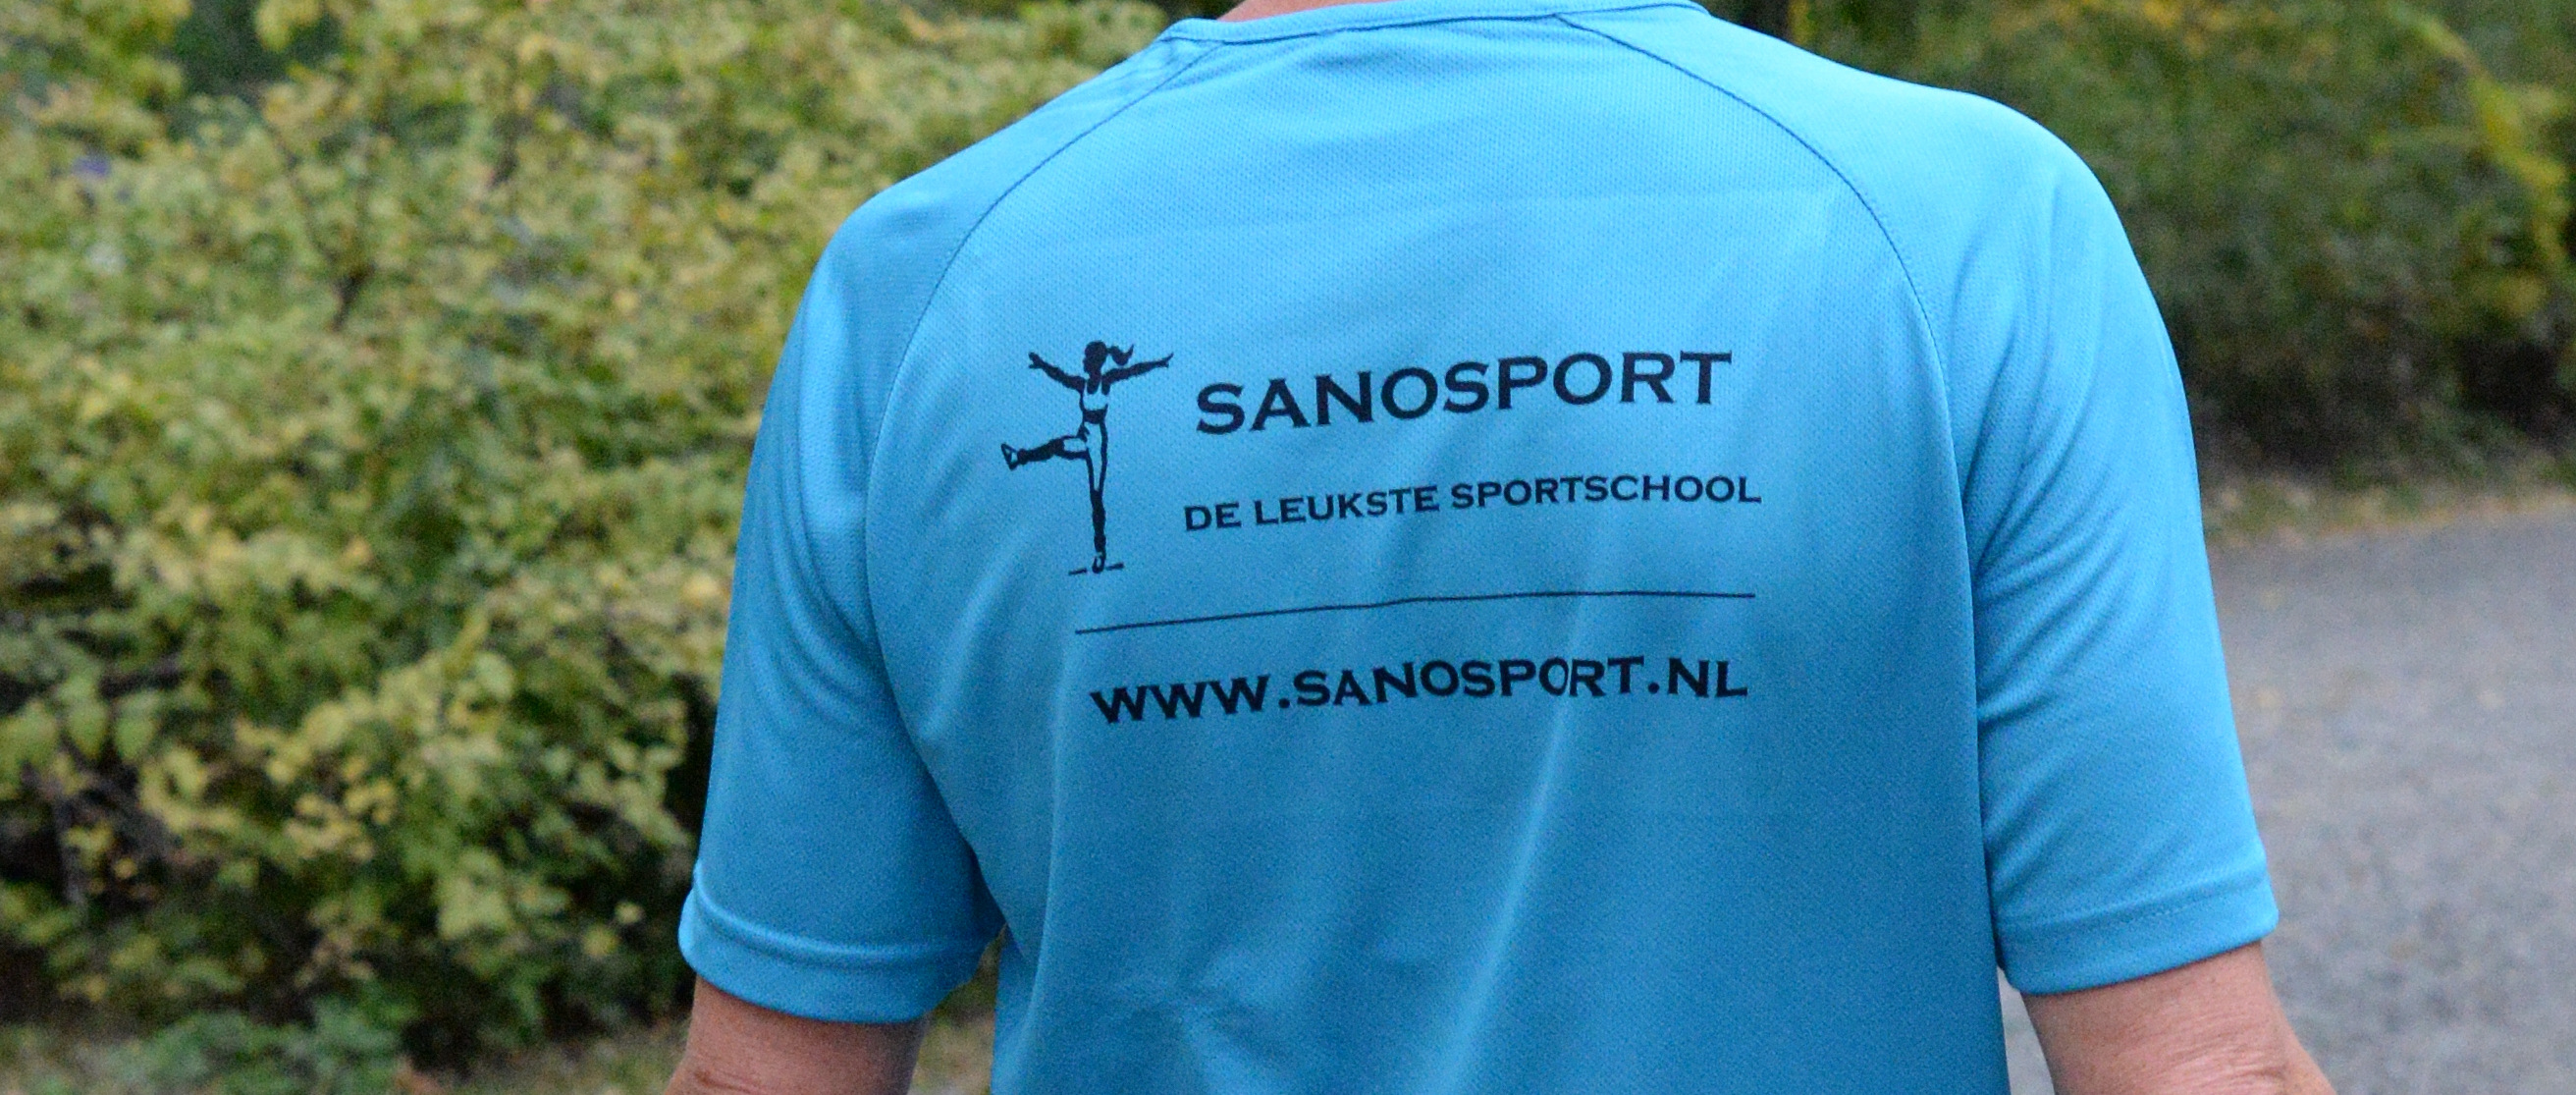 Central Park New York City Sanosport de leukste sportschool Biddinghuizen Dronten Personal Trainer